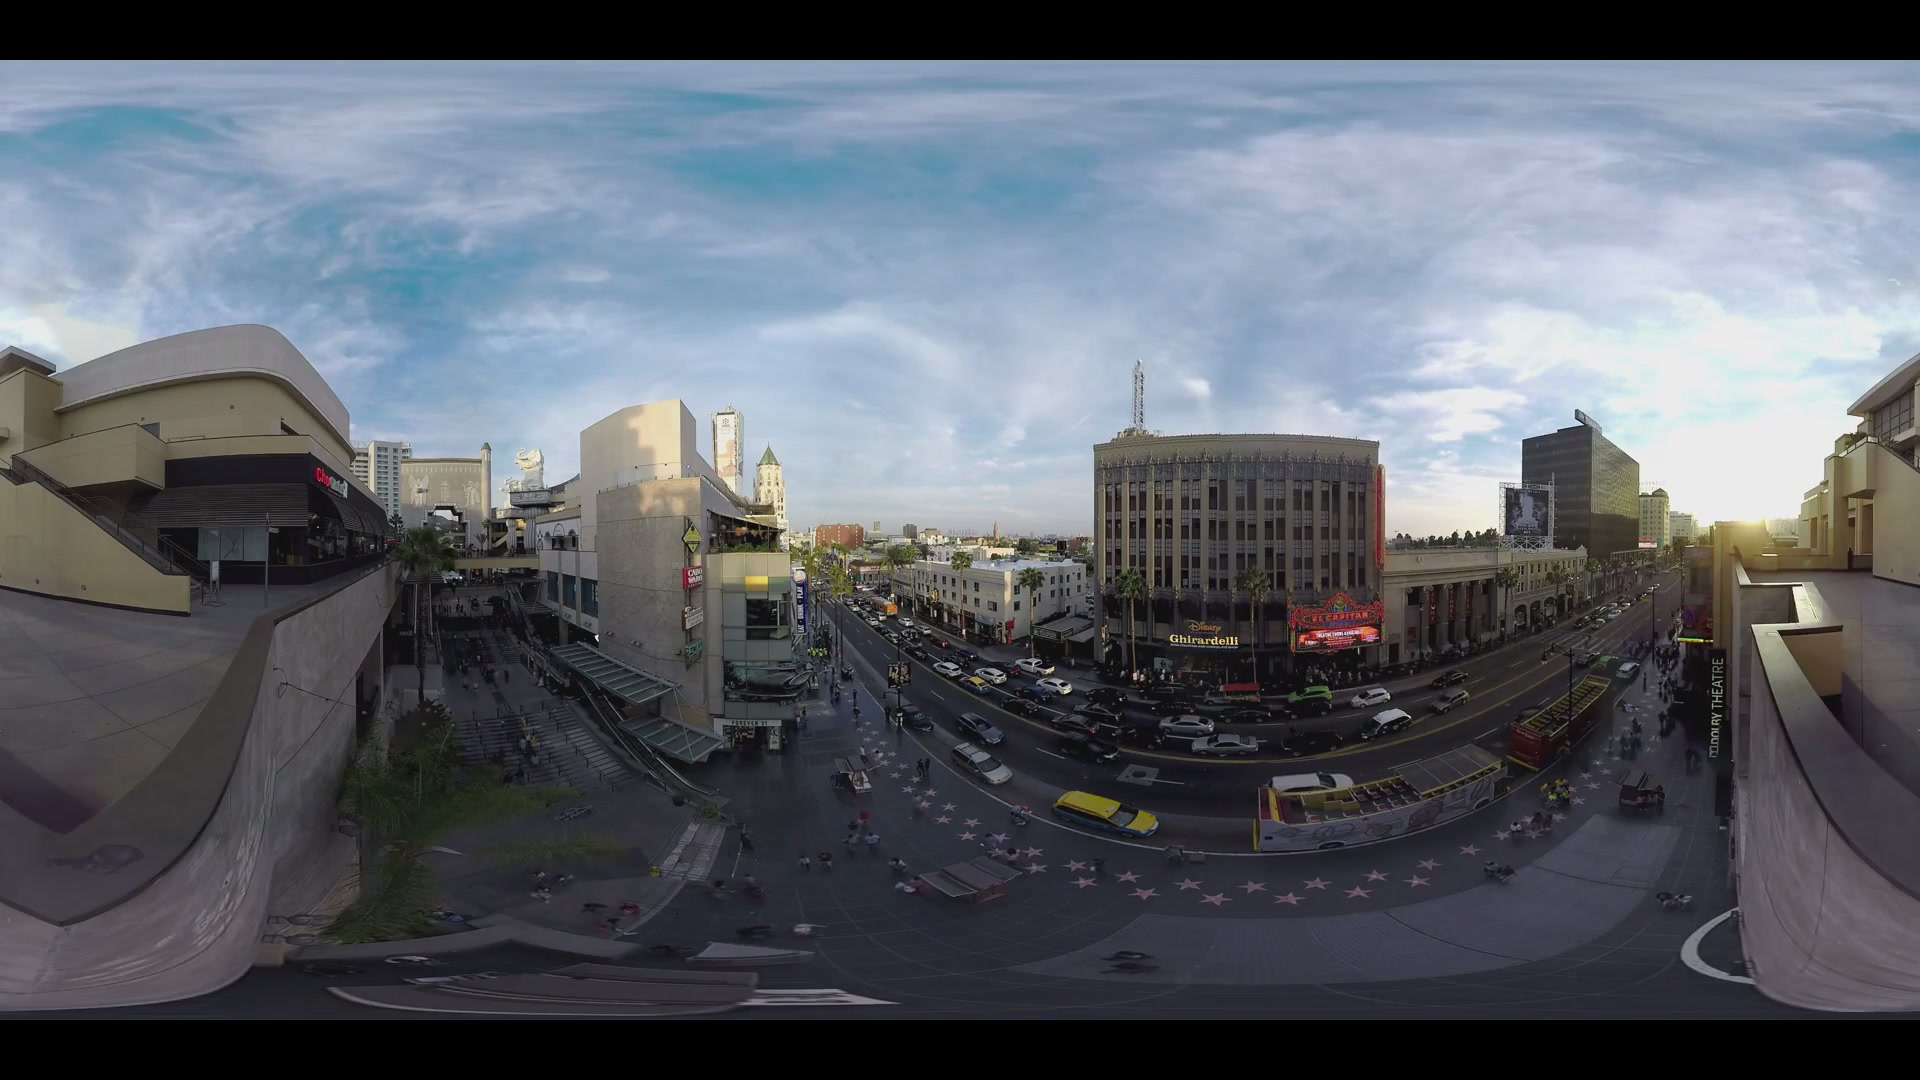 360 Video of Los Angeles Street From Rooftop